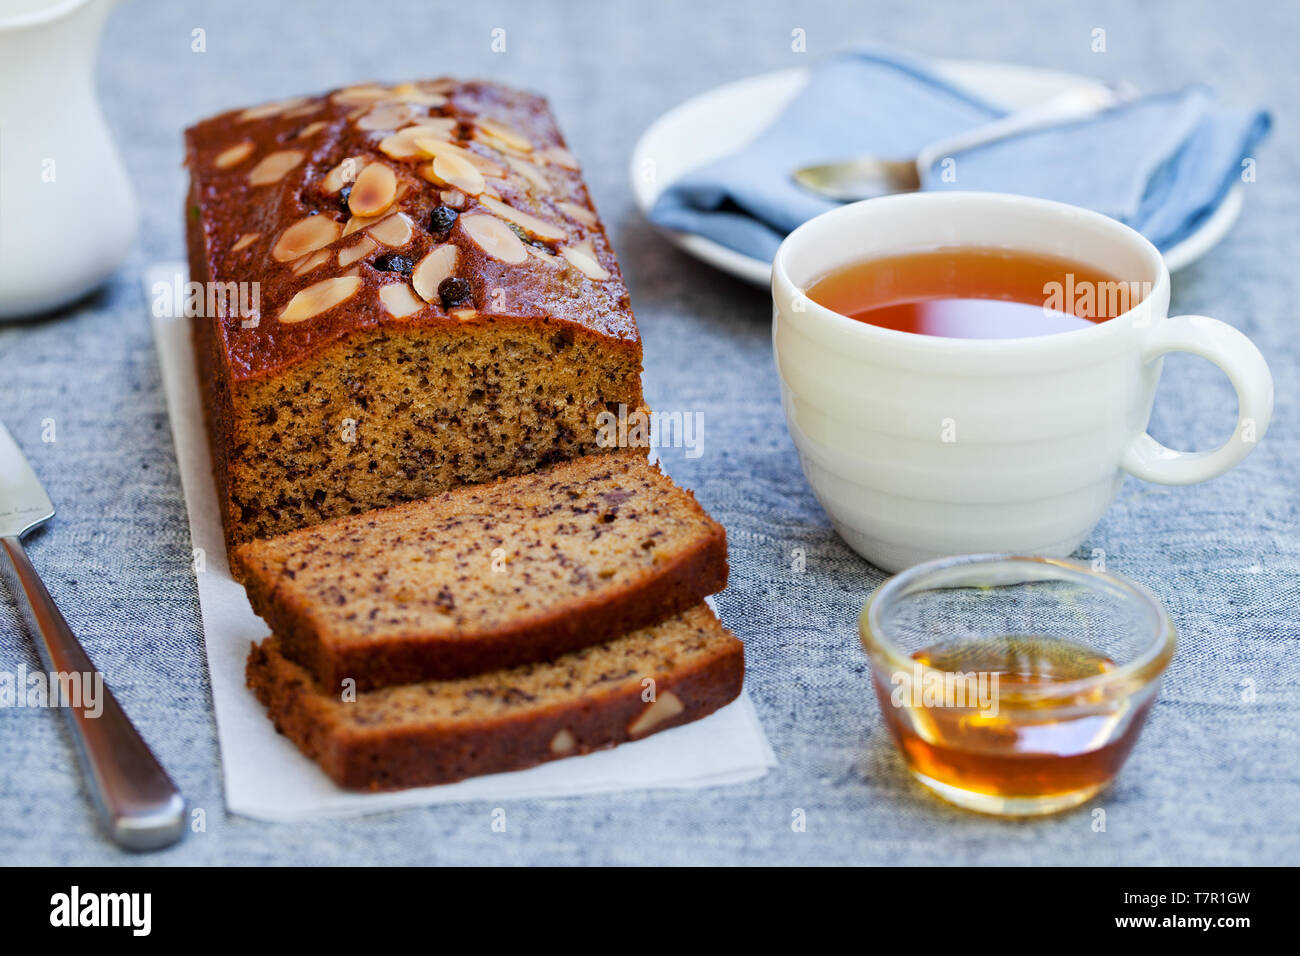 Banana, carrot, apple cake, loaf with chocolate and cup of tea on grey background. Stock Photo